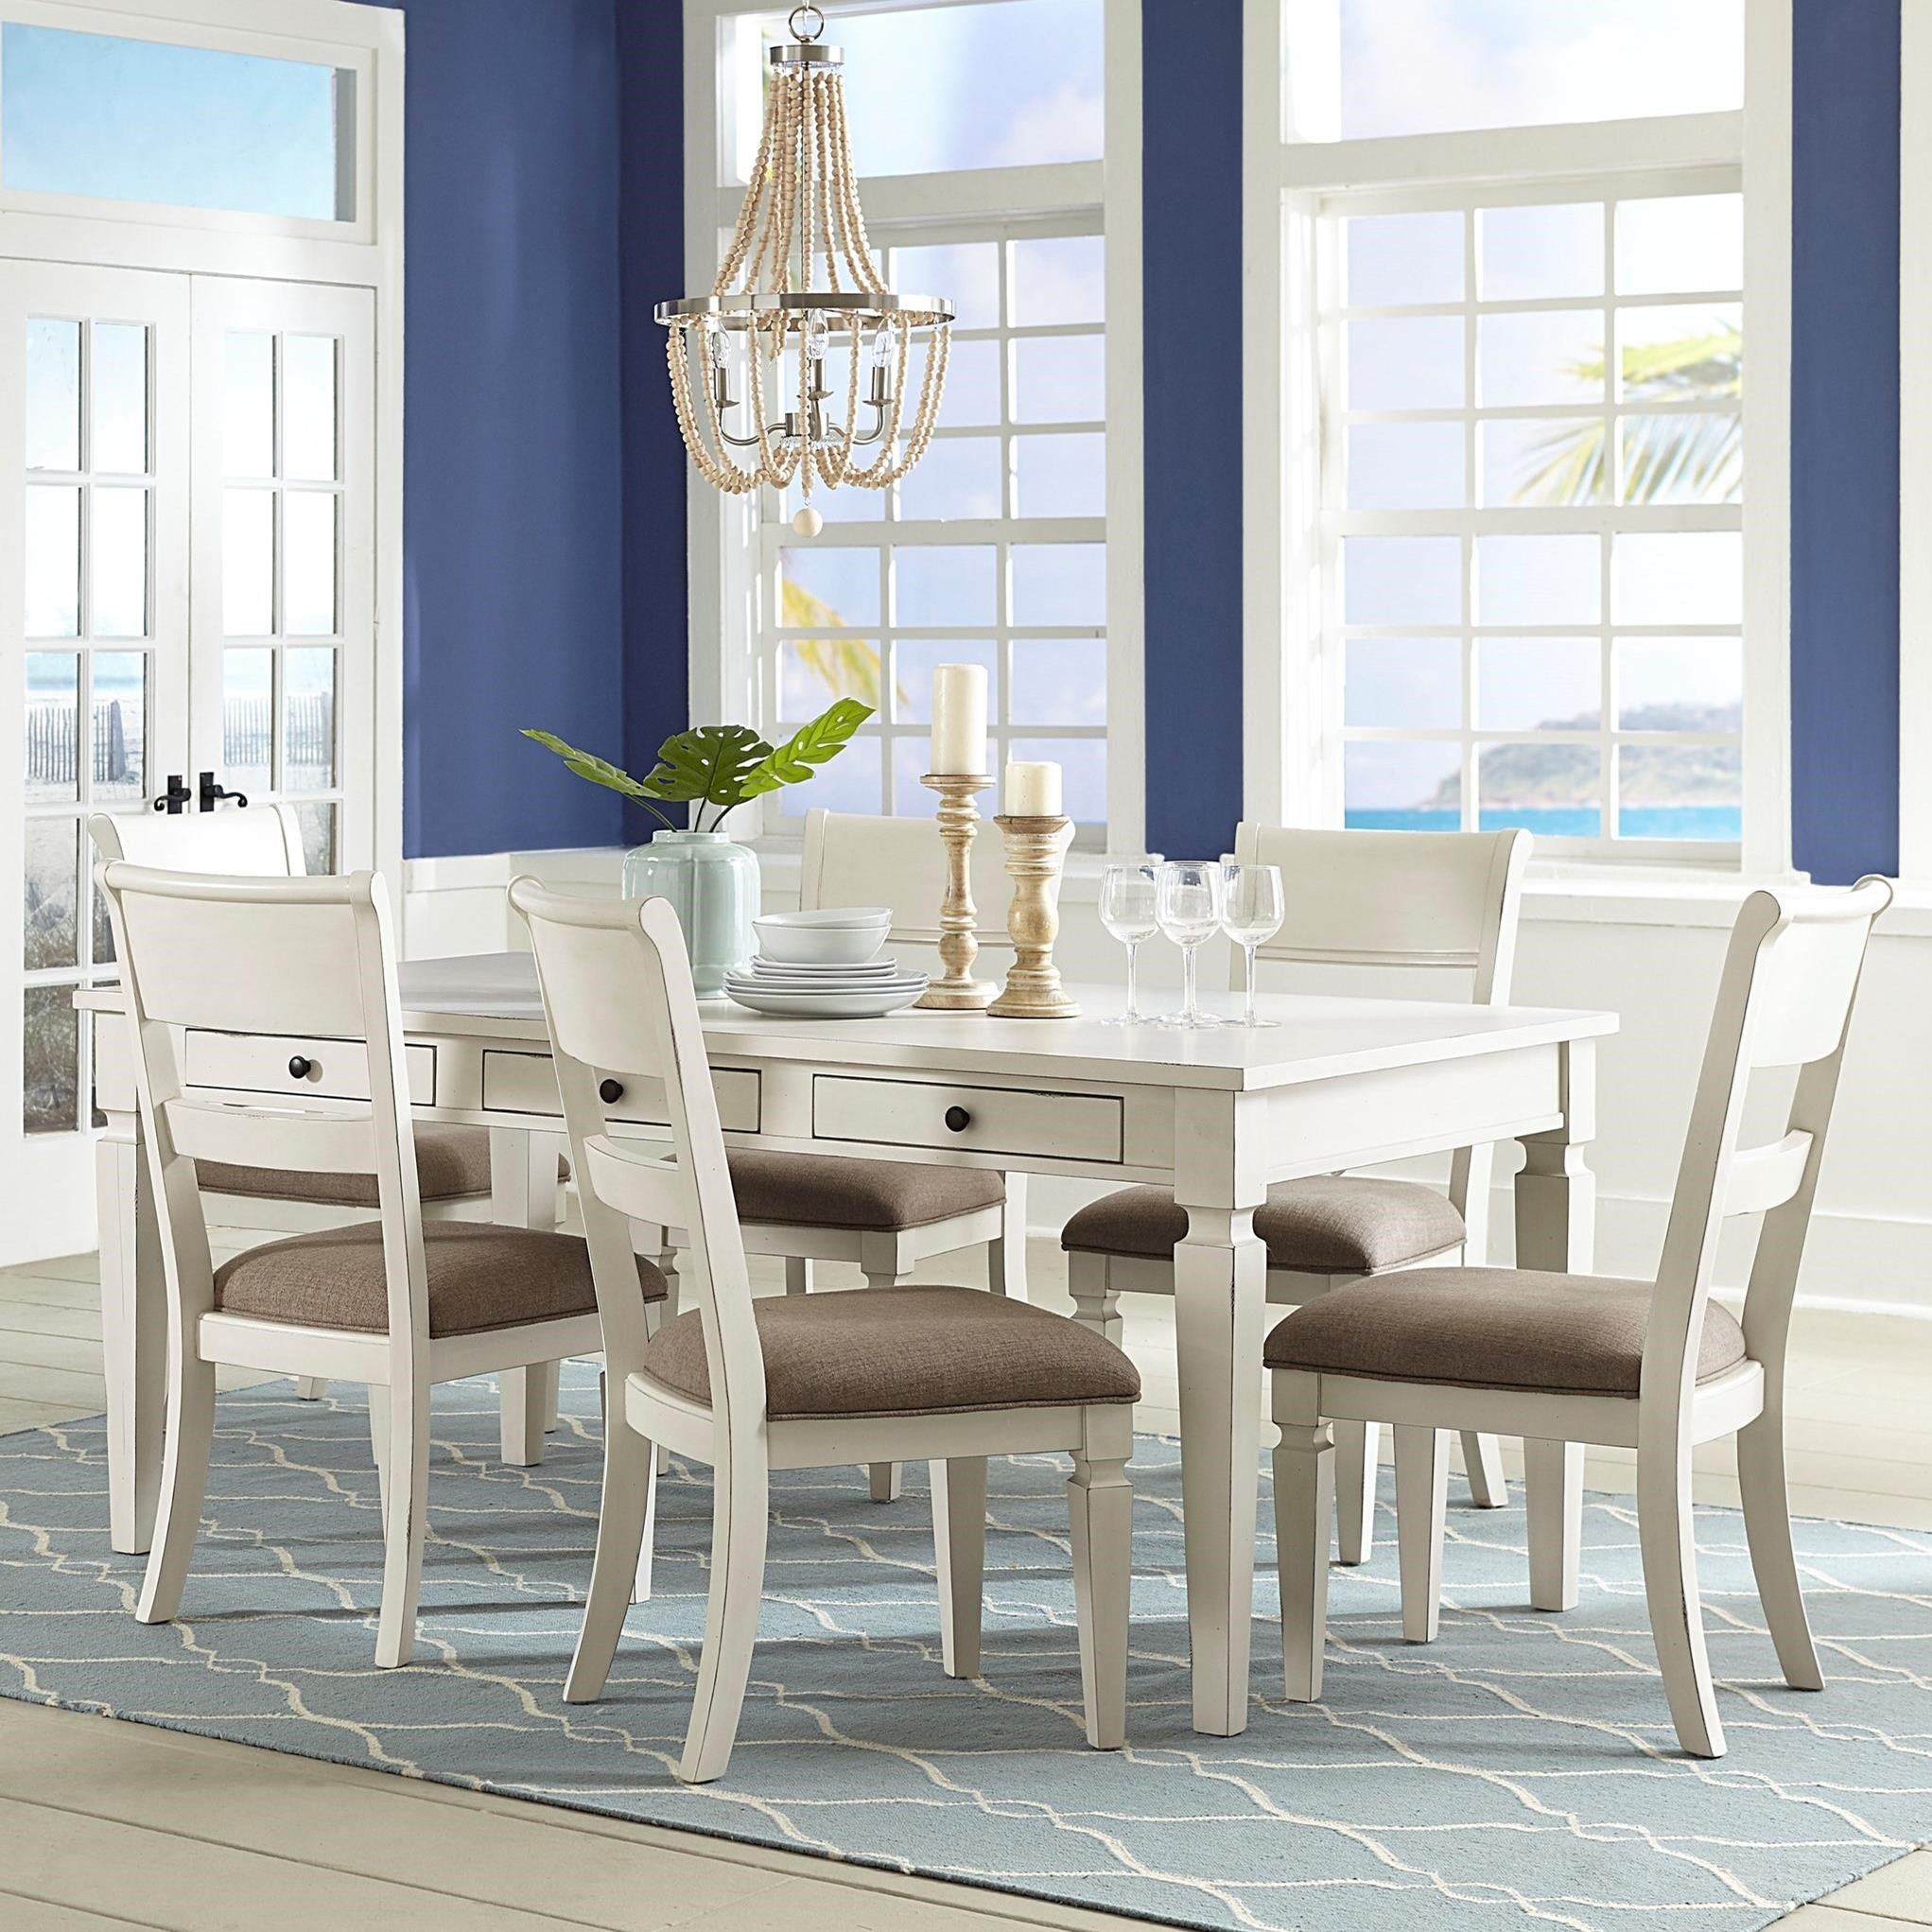 Chesapeake Bay 7-Pc Table and Chair Set by Standard Furniture at Rooms for Less